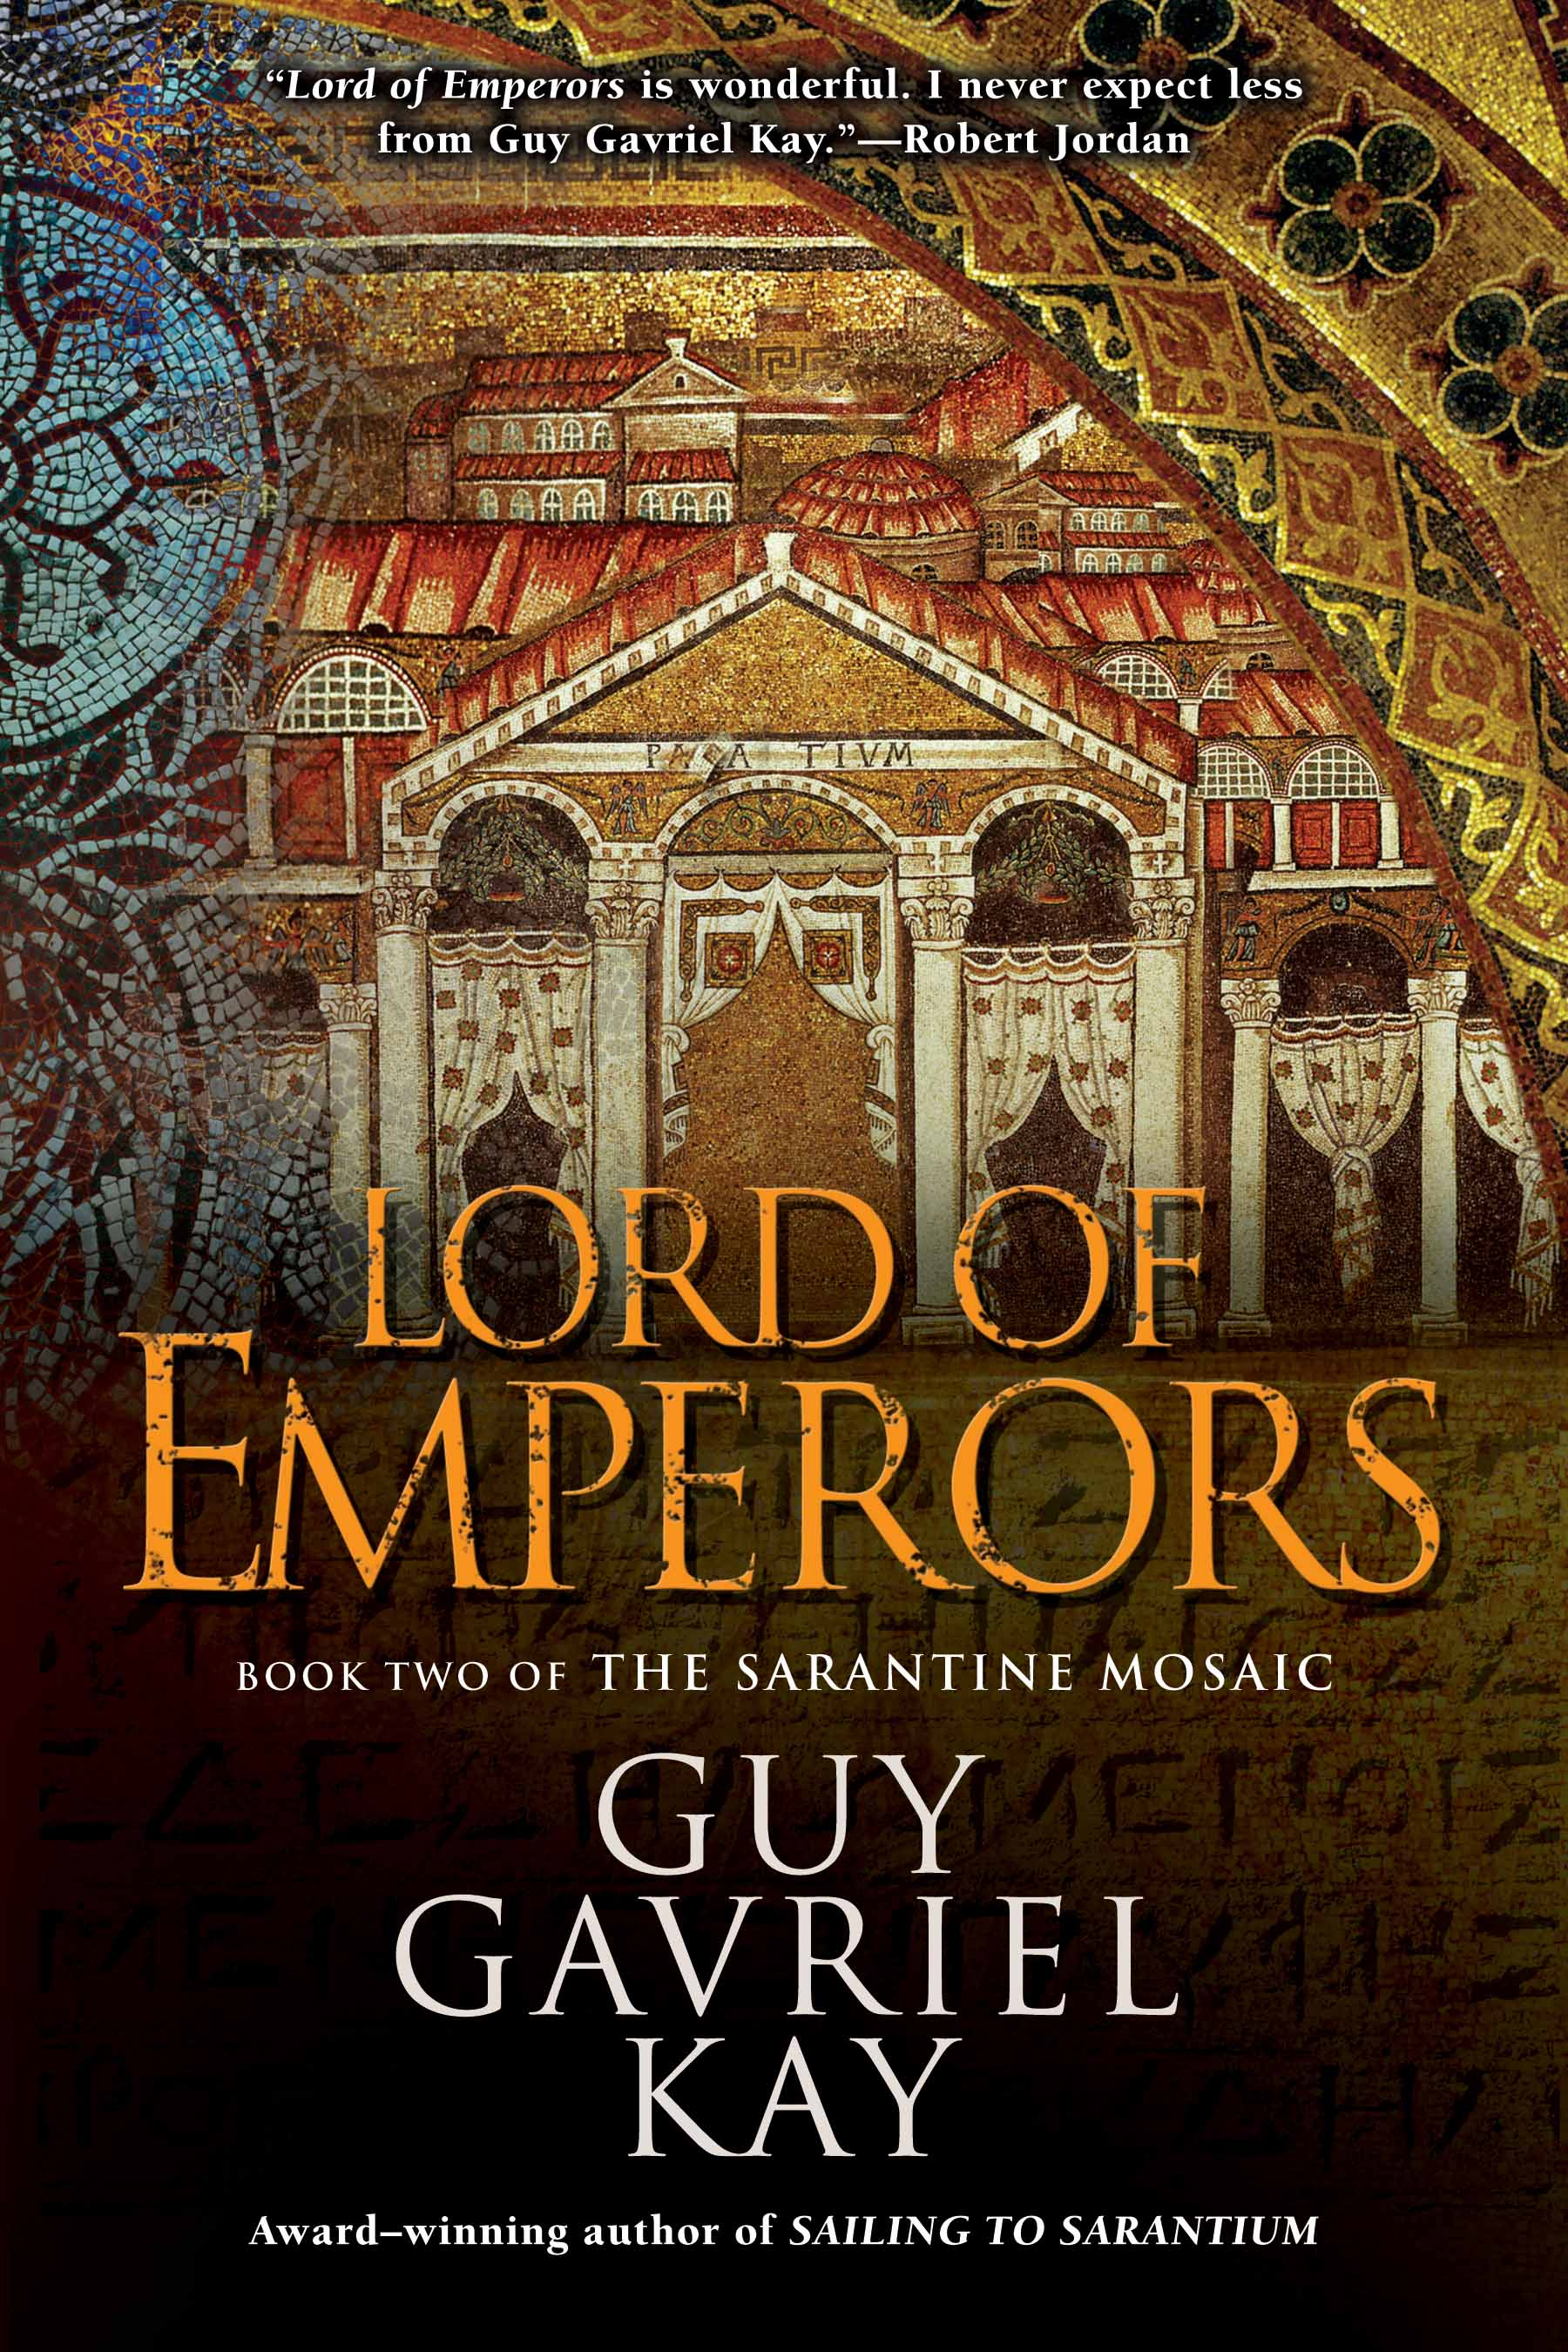 New US edition of Lord of Emperors